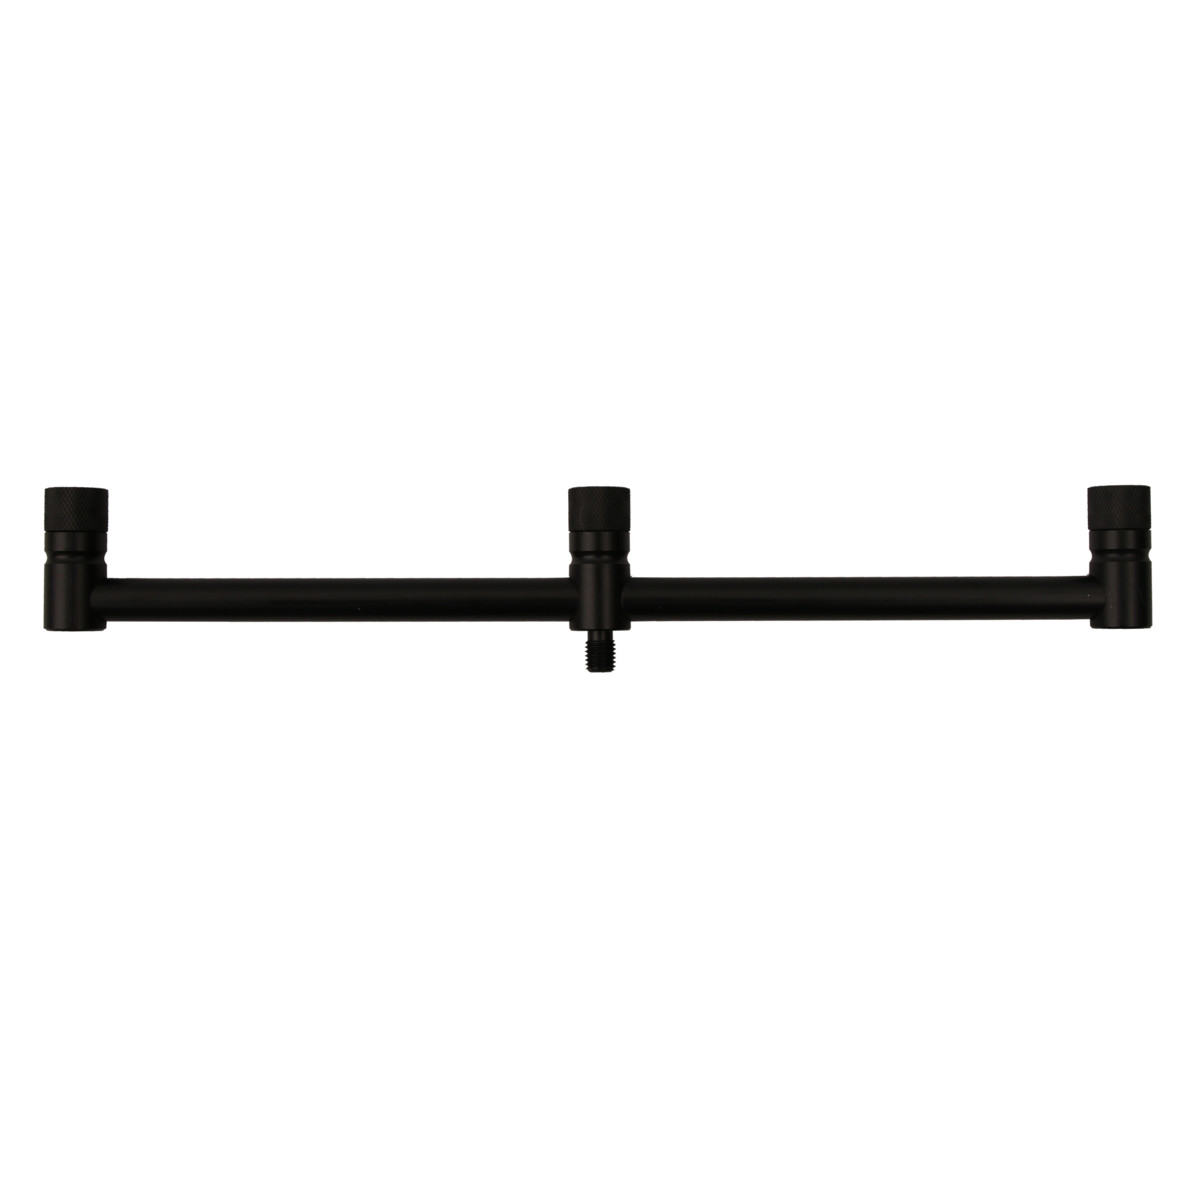 Hrazda Gardner Black Shadow Buzzer Bars (3 rod), 10 inch